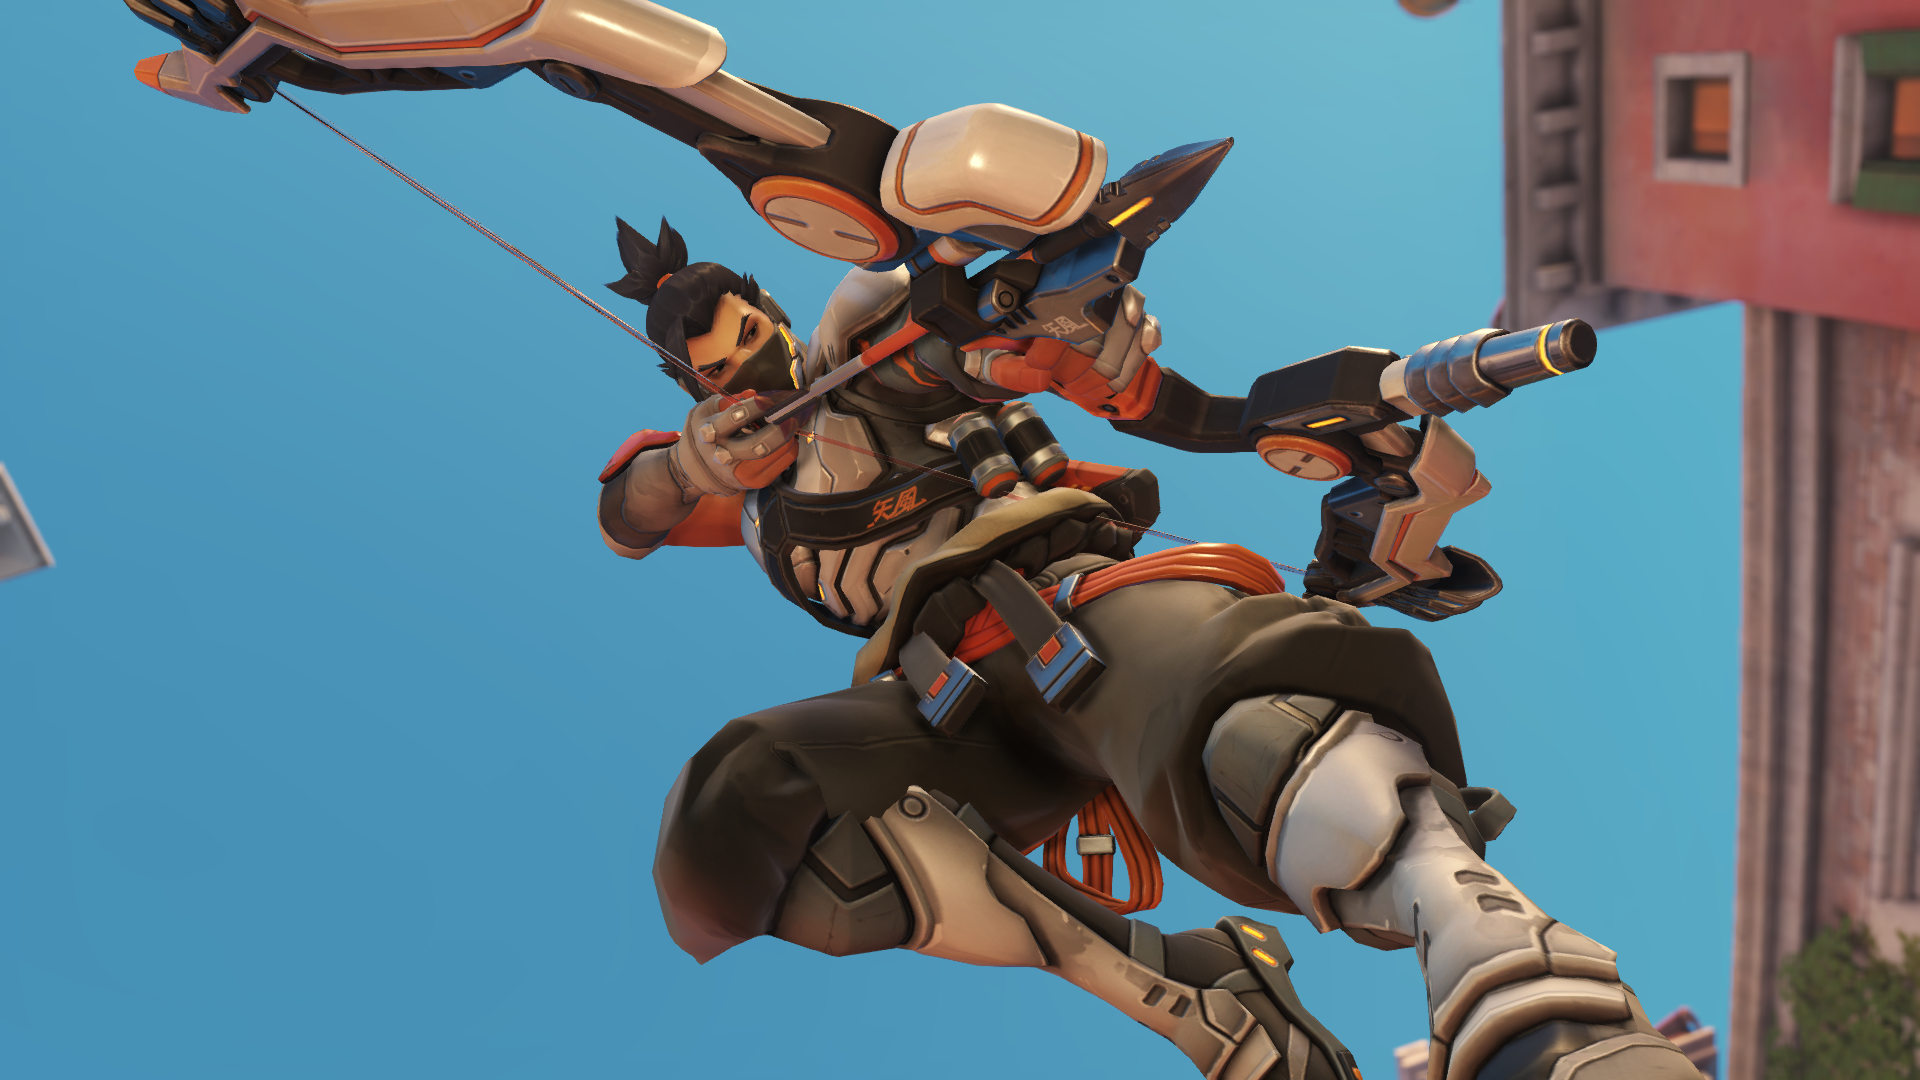 Hanzo drawing bow in overwatch